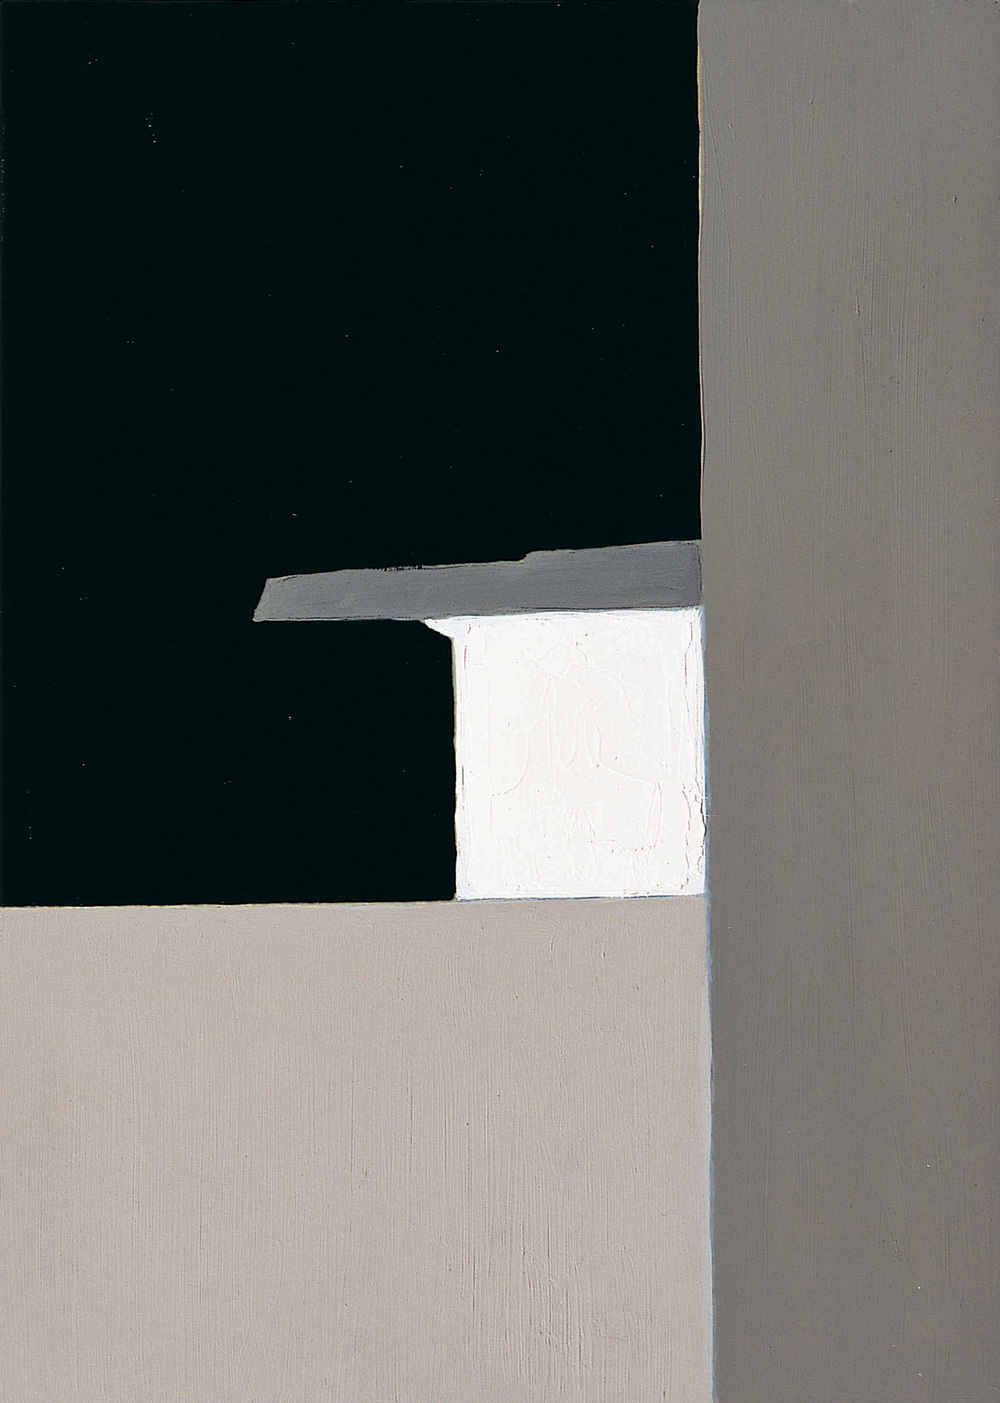 Liam Belton_-_White Square_oil on paper_17.5 x 12.5cm.jpg